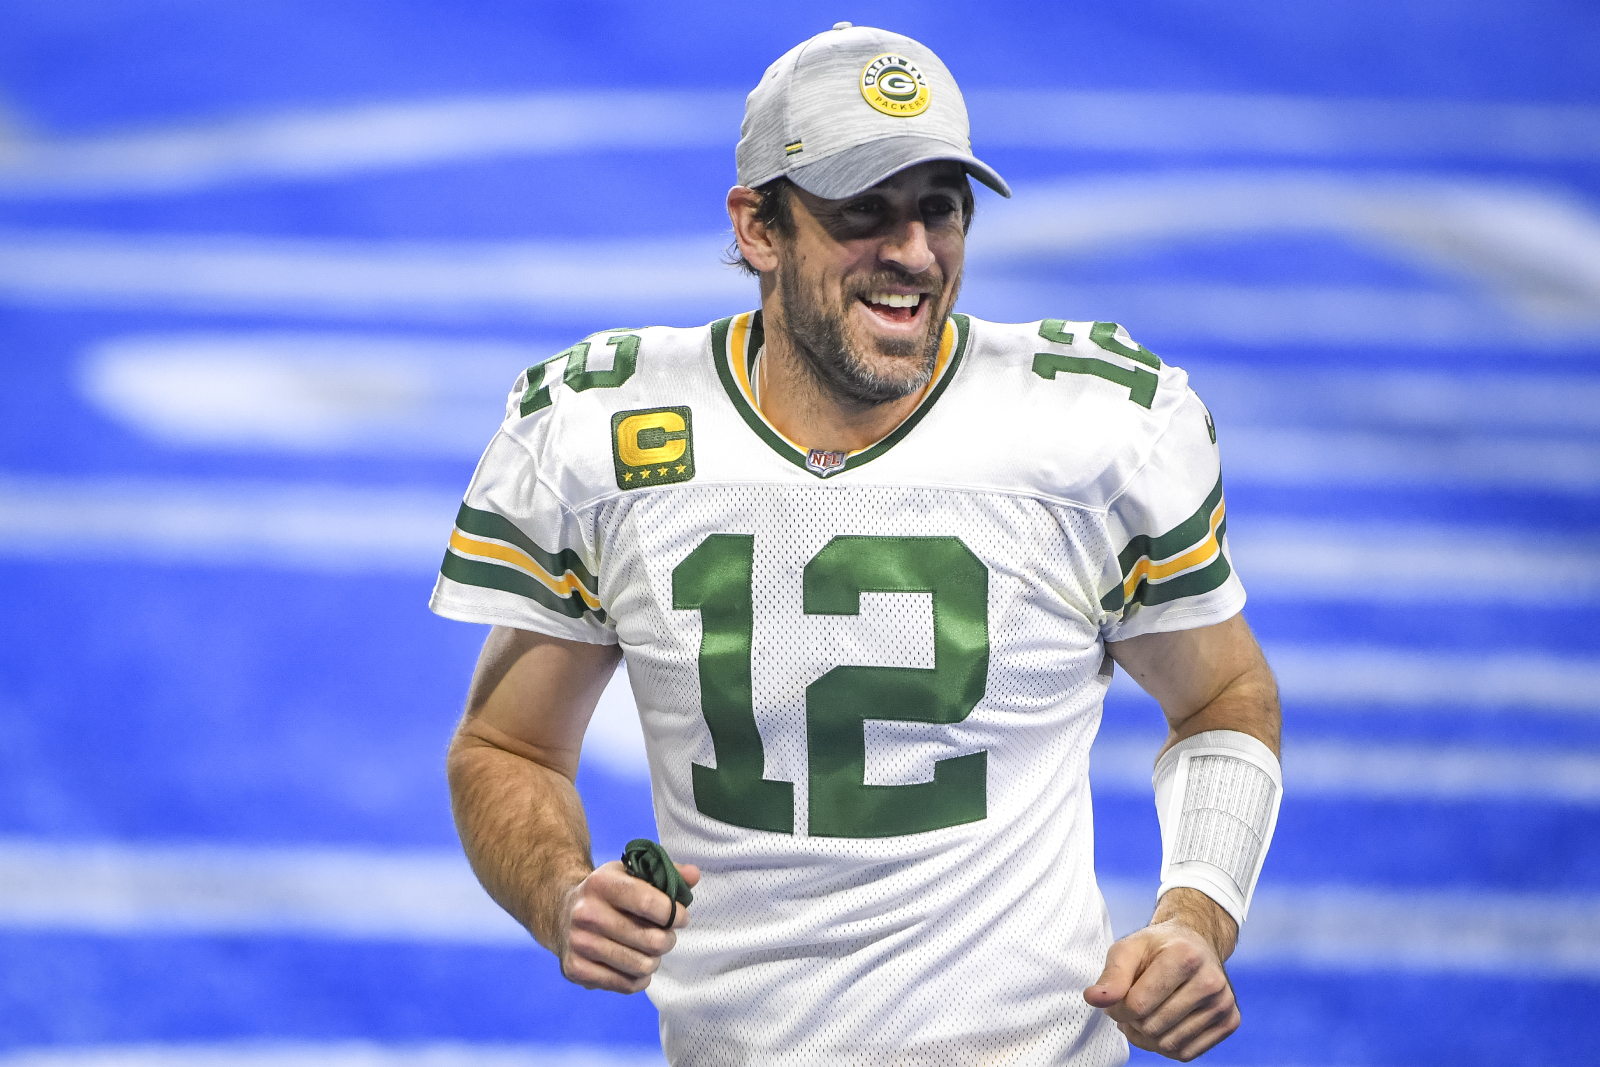 Many people love to have the GOAT debate for NFL quarterbacks. Green Bay Packers QB Aaron Rodgers recently addressed the debate.